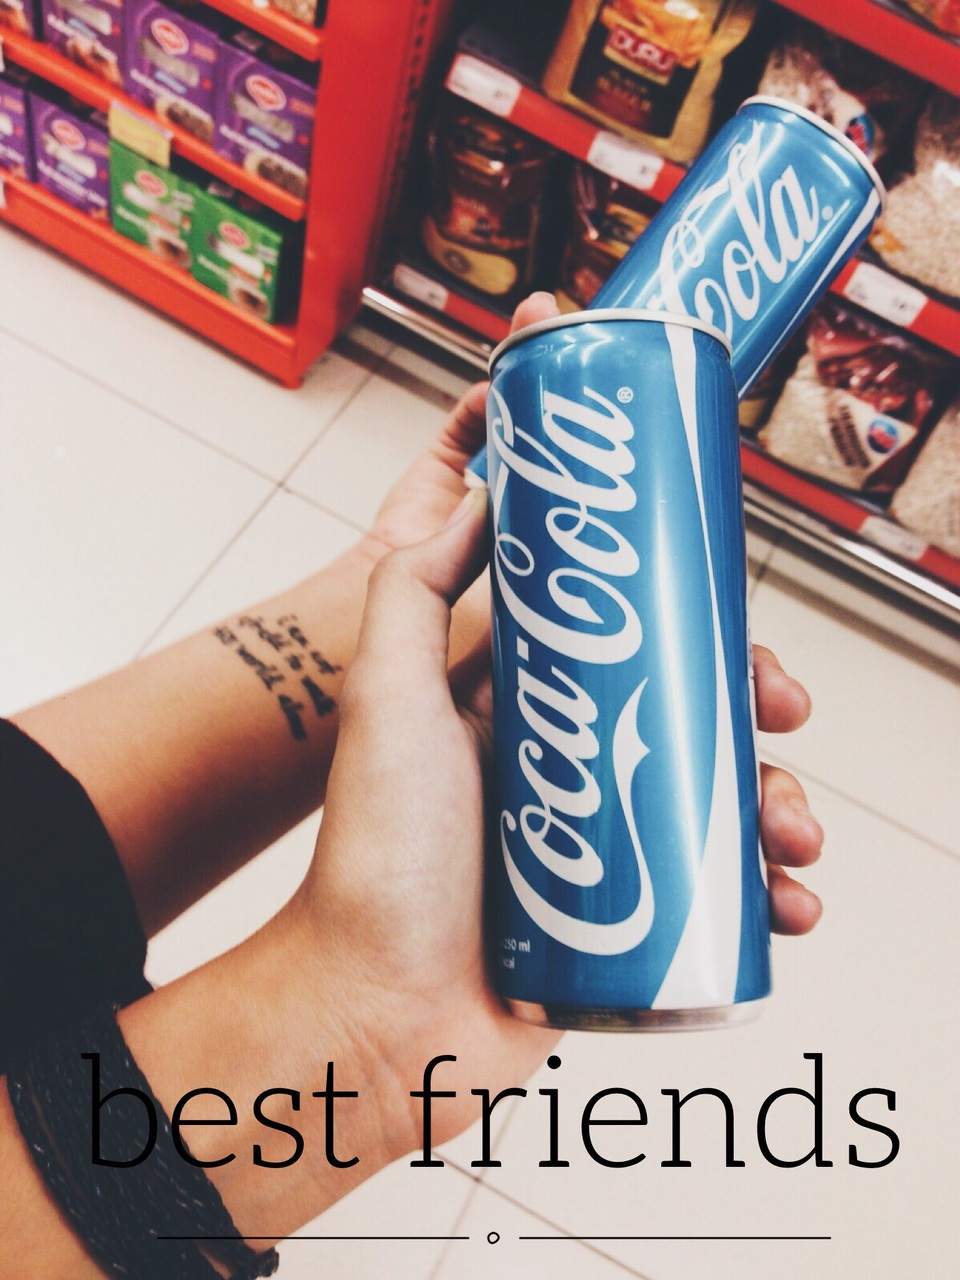 autumn, bes friends, bff, boys, christmas, coca cola, cute, dreamer, easel, escape, fashion, food, girls, hair, love, outfits, perfect, photography, quotes, rainy, retro, snow, tatoo, tumblr, vintage, winter, tumblr room, books and coffee